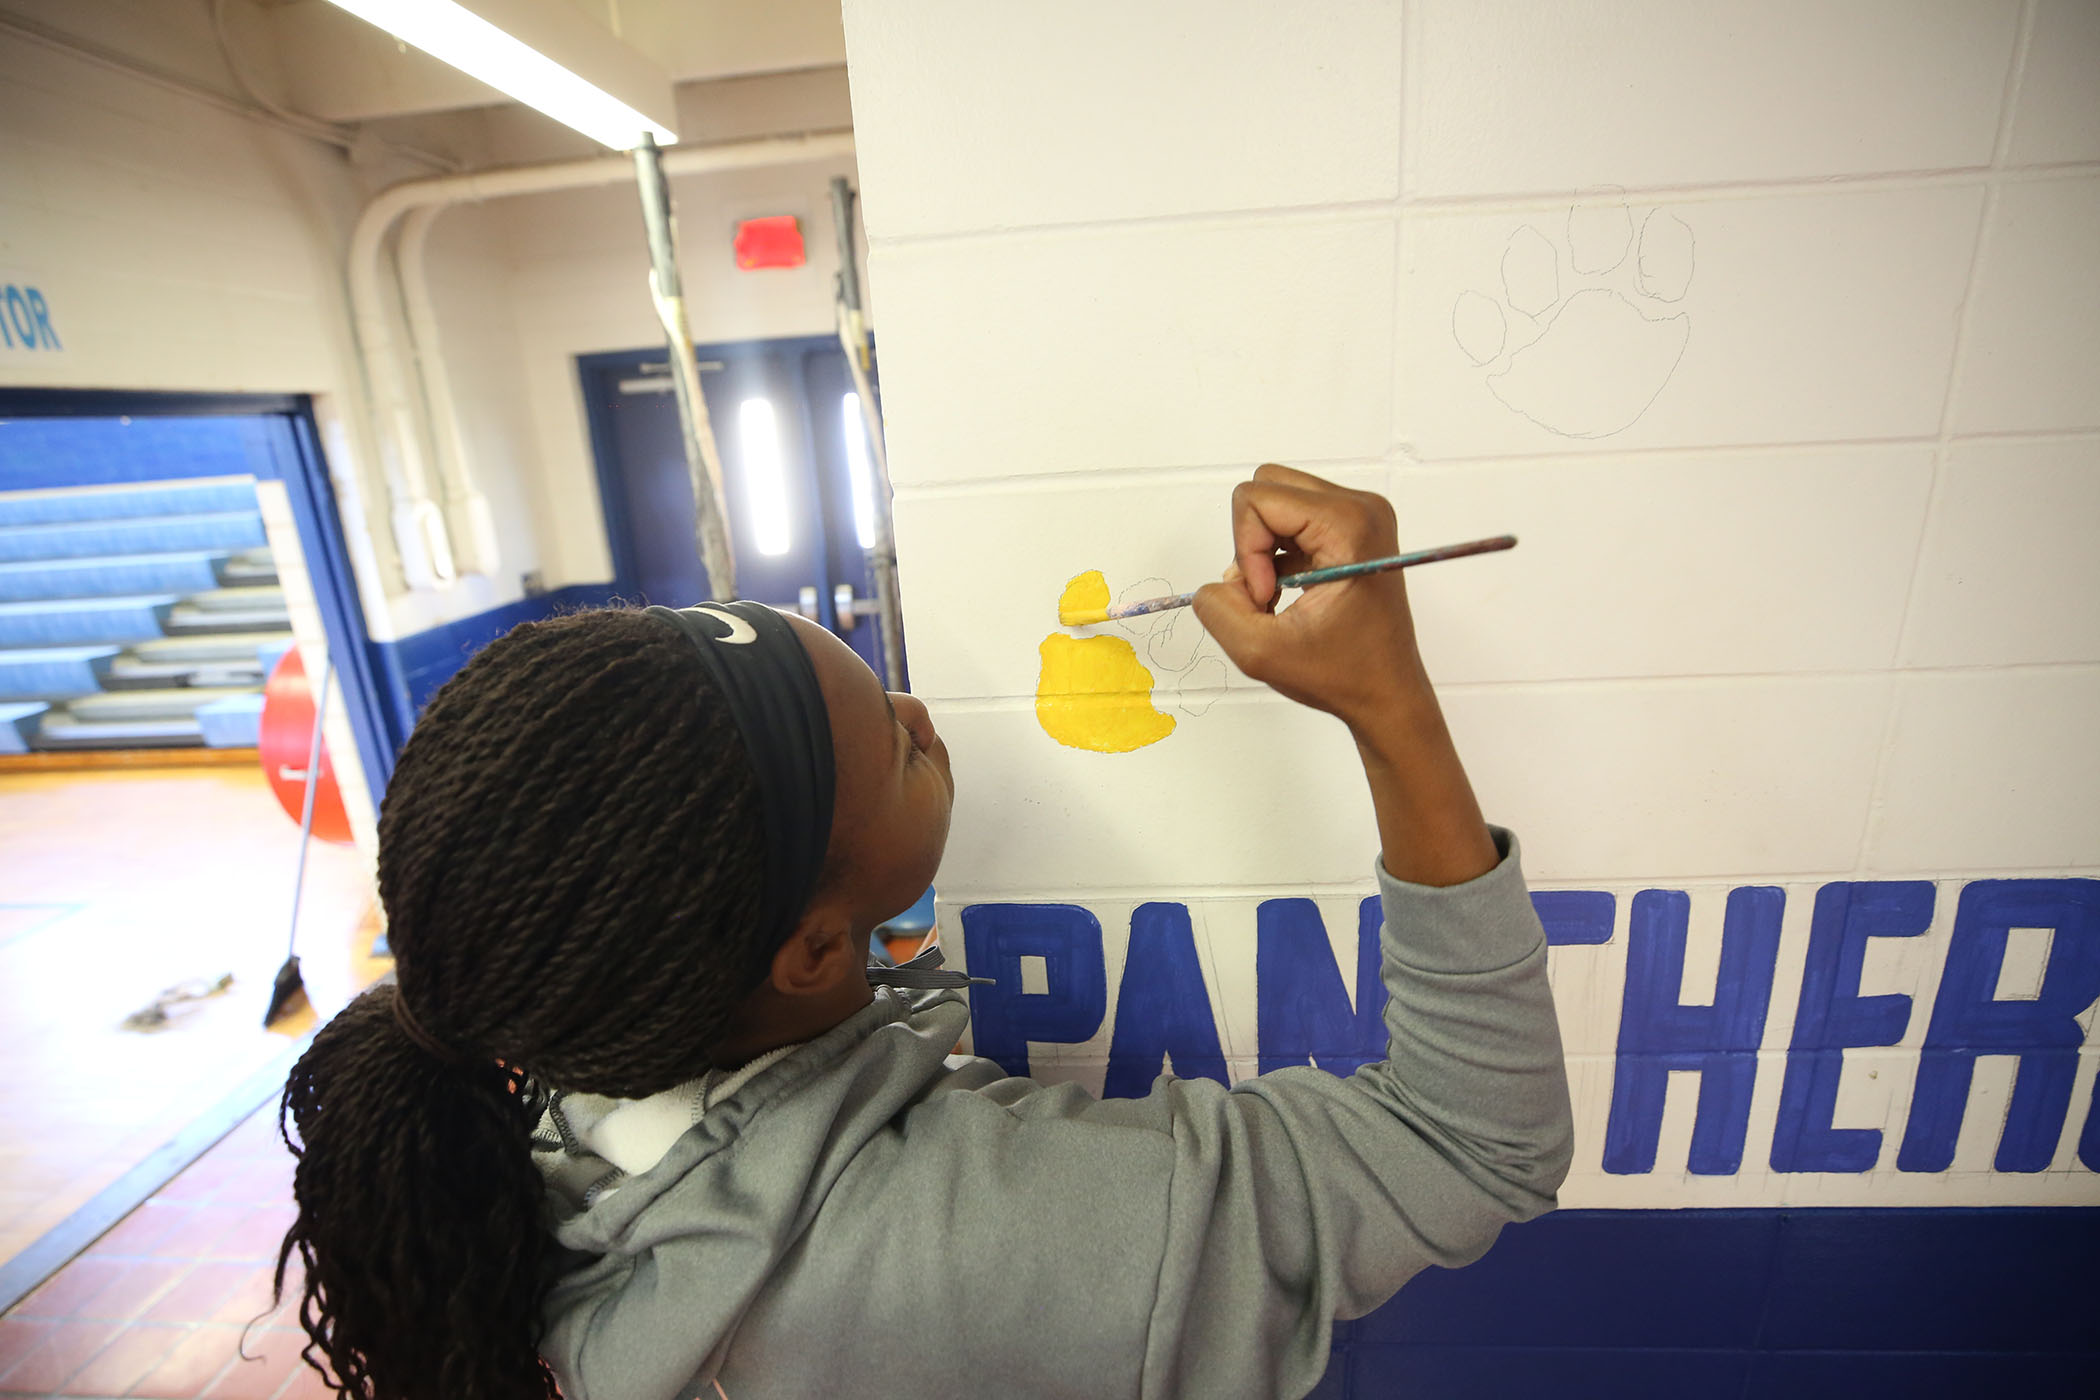 Panthers help paint their gym, affectionately called their House.